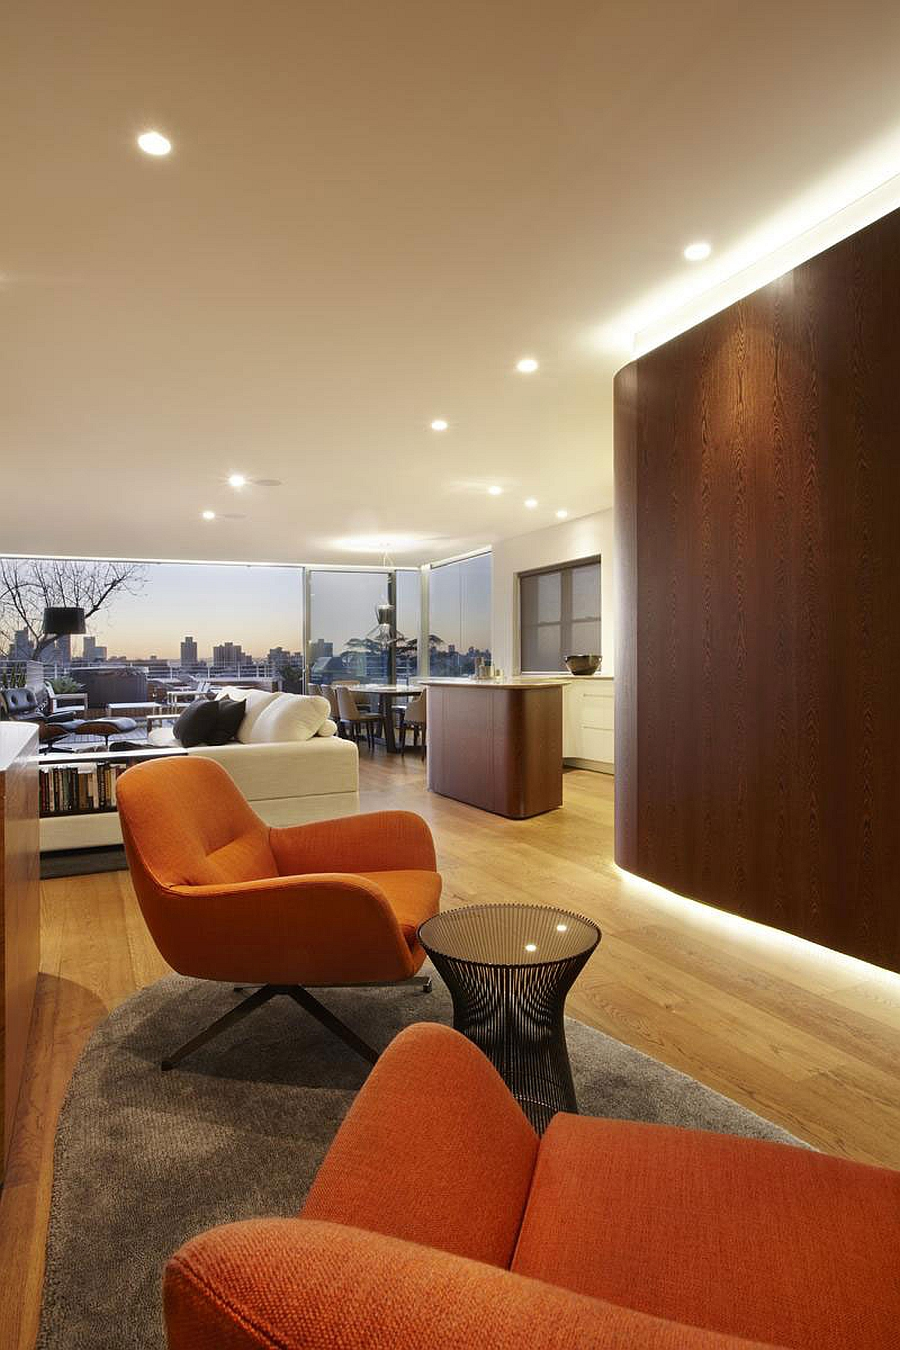 Lovely orange chairs add color to the sydney apartment